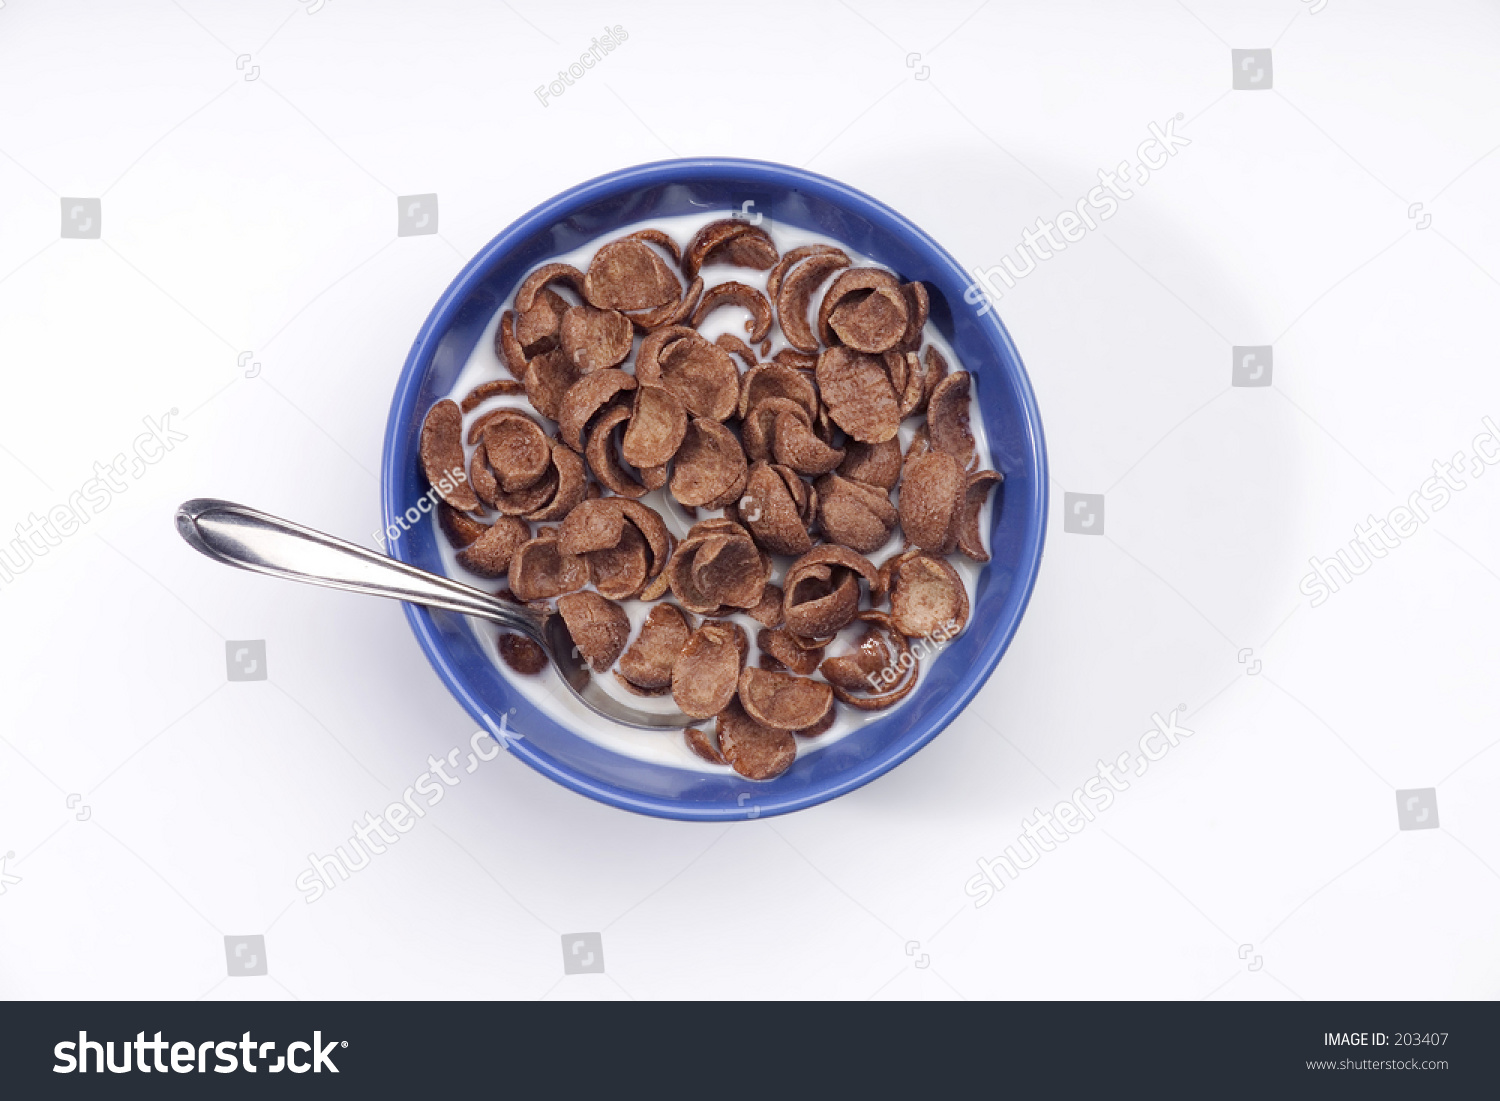 Chocolate Cereal In Bowl With Milk Stock Photo 203407 : Shutterstock